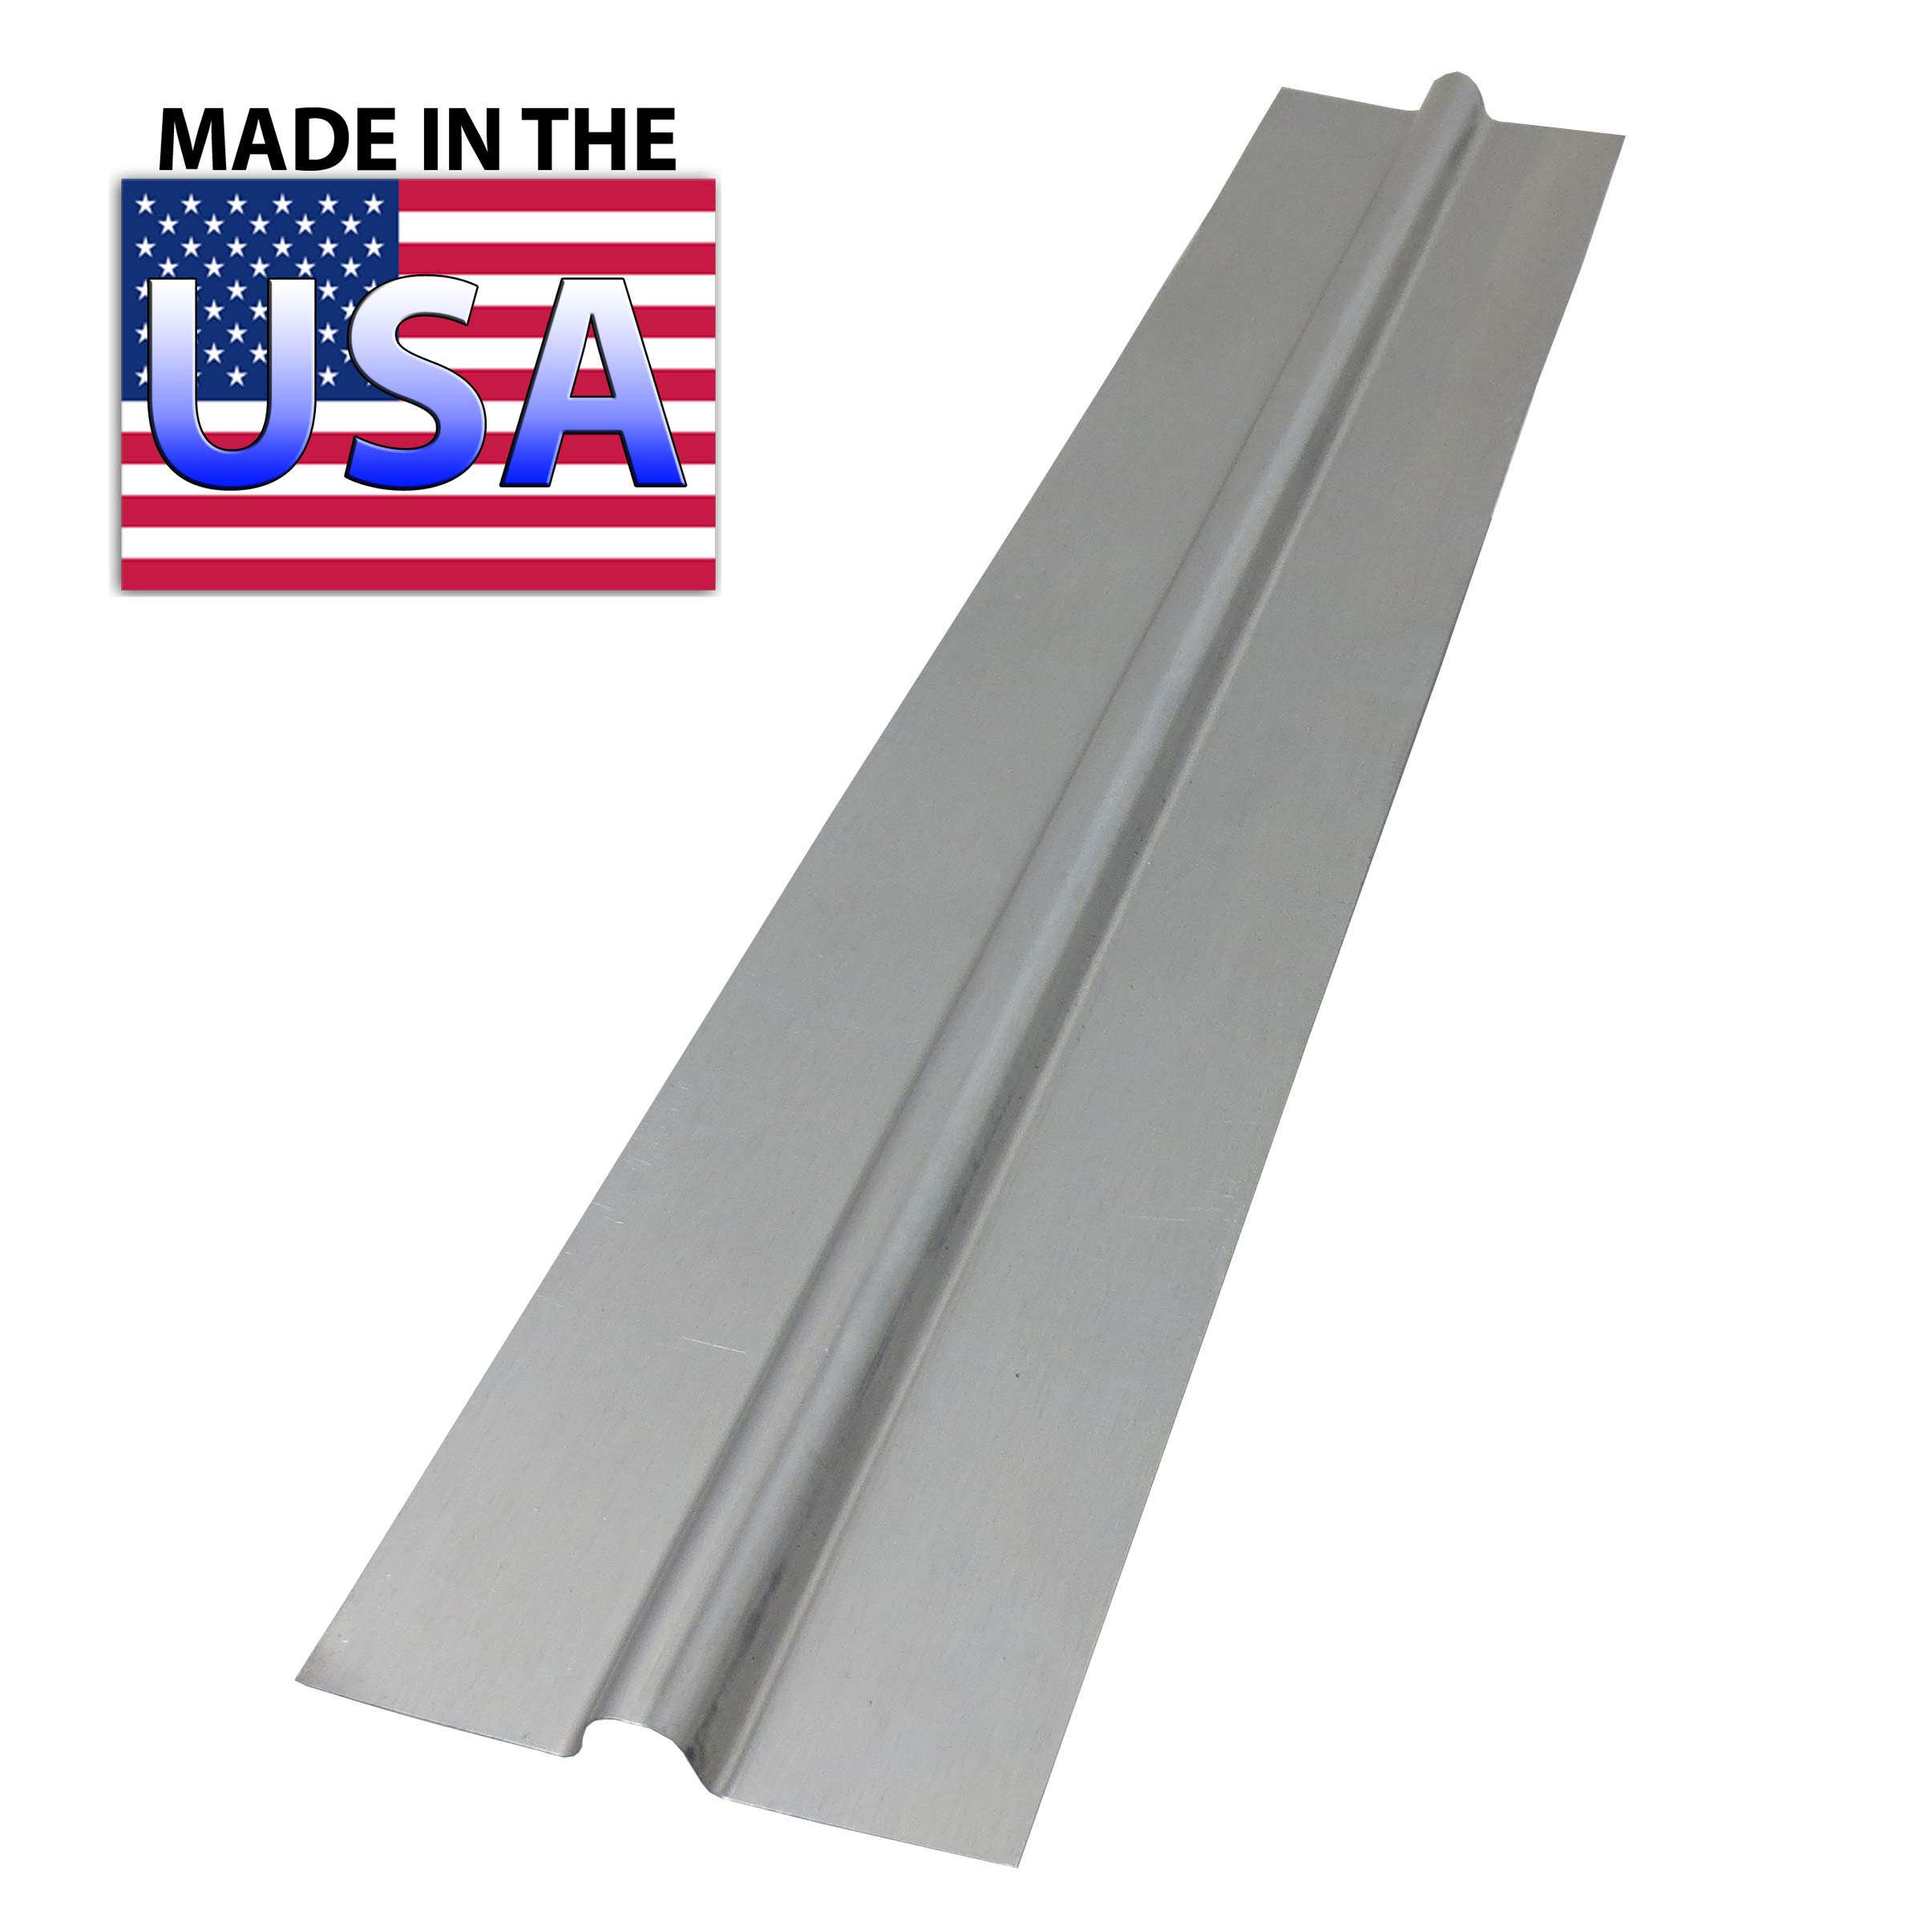 2 Ft - 1/2'' PEX Aluminum Heat Transfer Plates, (100/box) for Radiant Heating (HP-2) by PEX GUY by PEX GUY